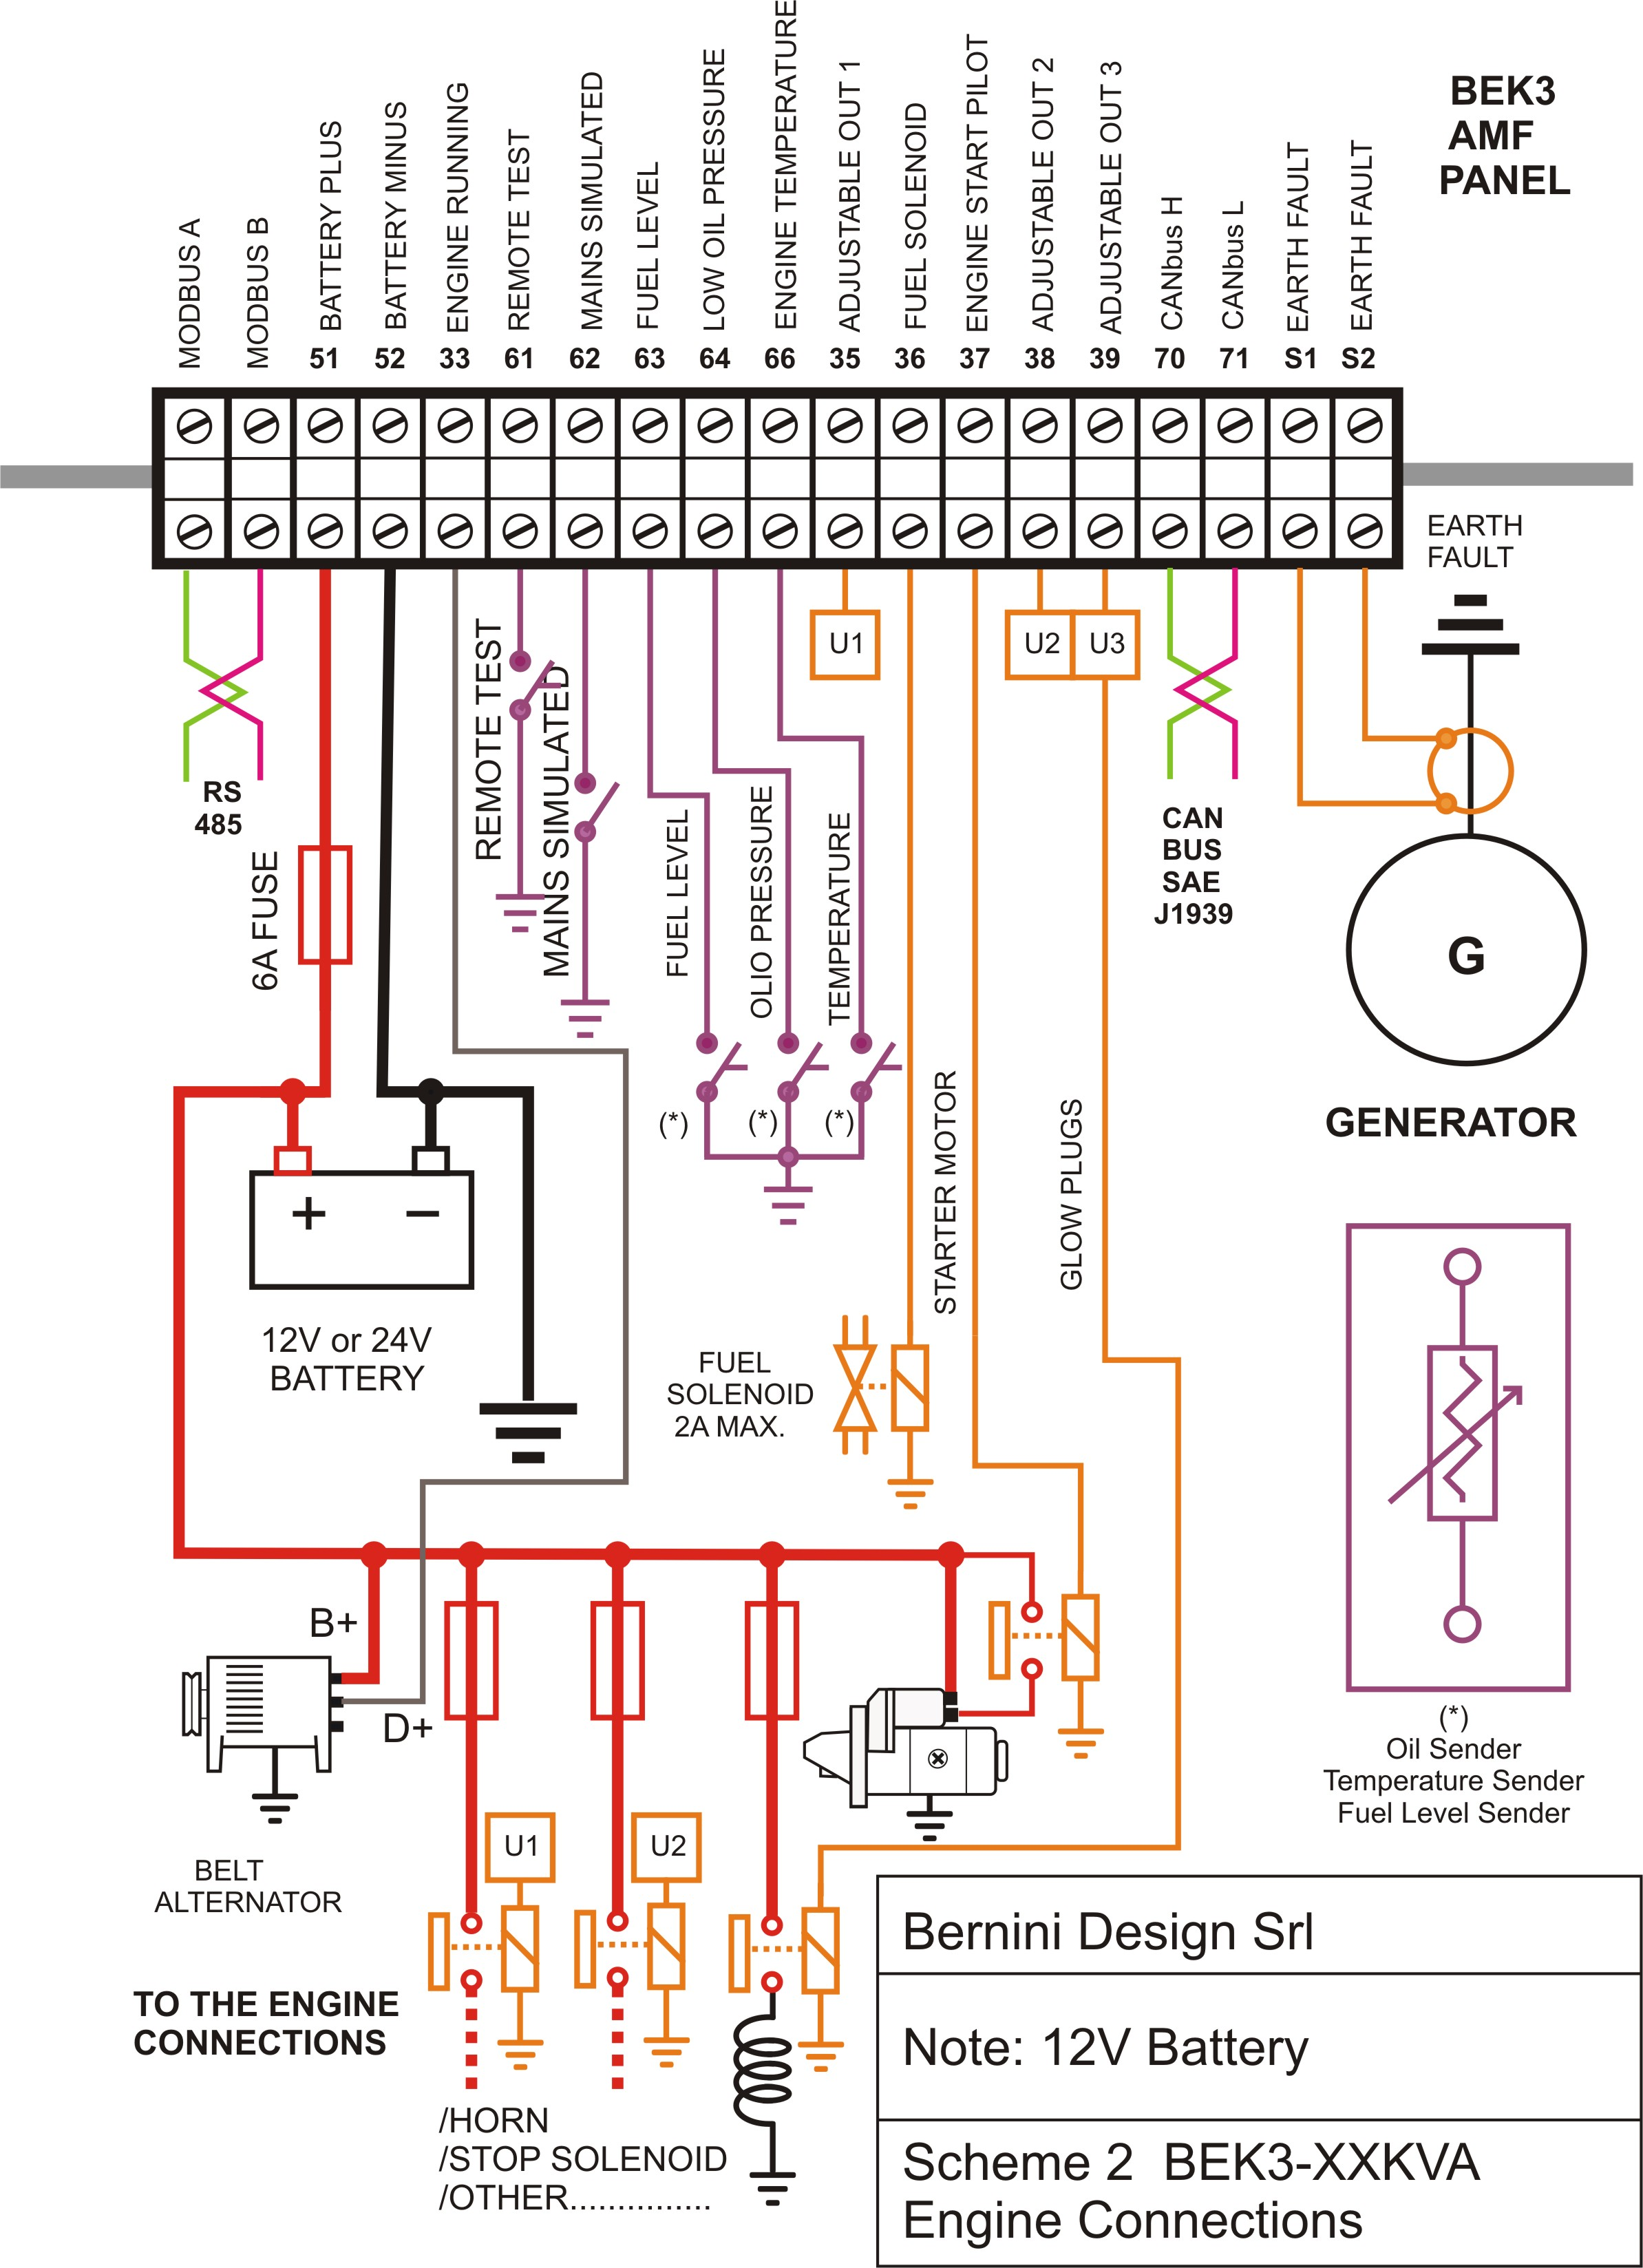 Circuit Diagram Engine Schematic - Wiring Block Diagram on how does a microwave work diagram, generator oil diagram, generator building diagram, generator plug diagram, generator connection diagram, generator schematic diagram, home generator diagram, circuit diagram, generator radiator diagram, generator exciter diagram, generator hook up diagram, rv trailer wire diagram, automotive generator diagram, generator wiring connectors, generator relay diagram, dc armature winding diagram, generator rotor diagram, generator fuel system diagram, generator solenoid diagram, electric generator diagram,